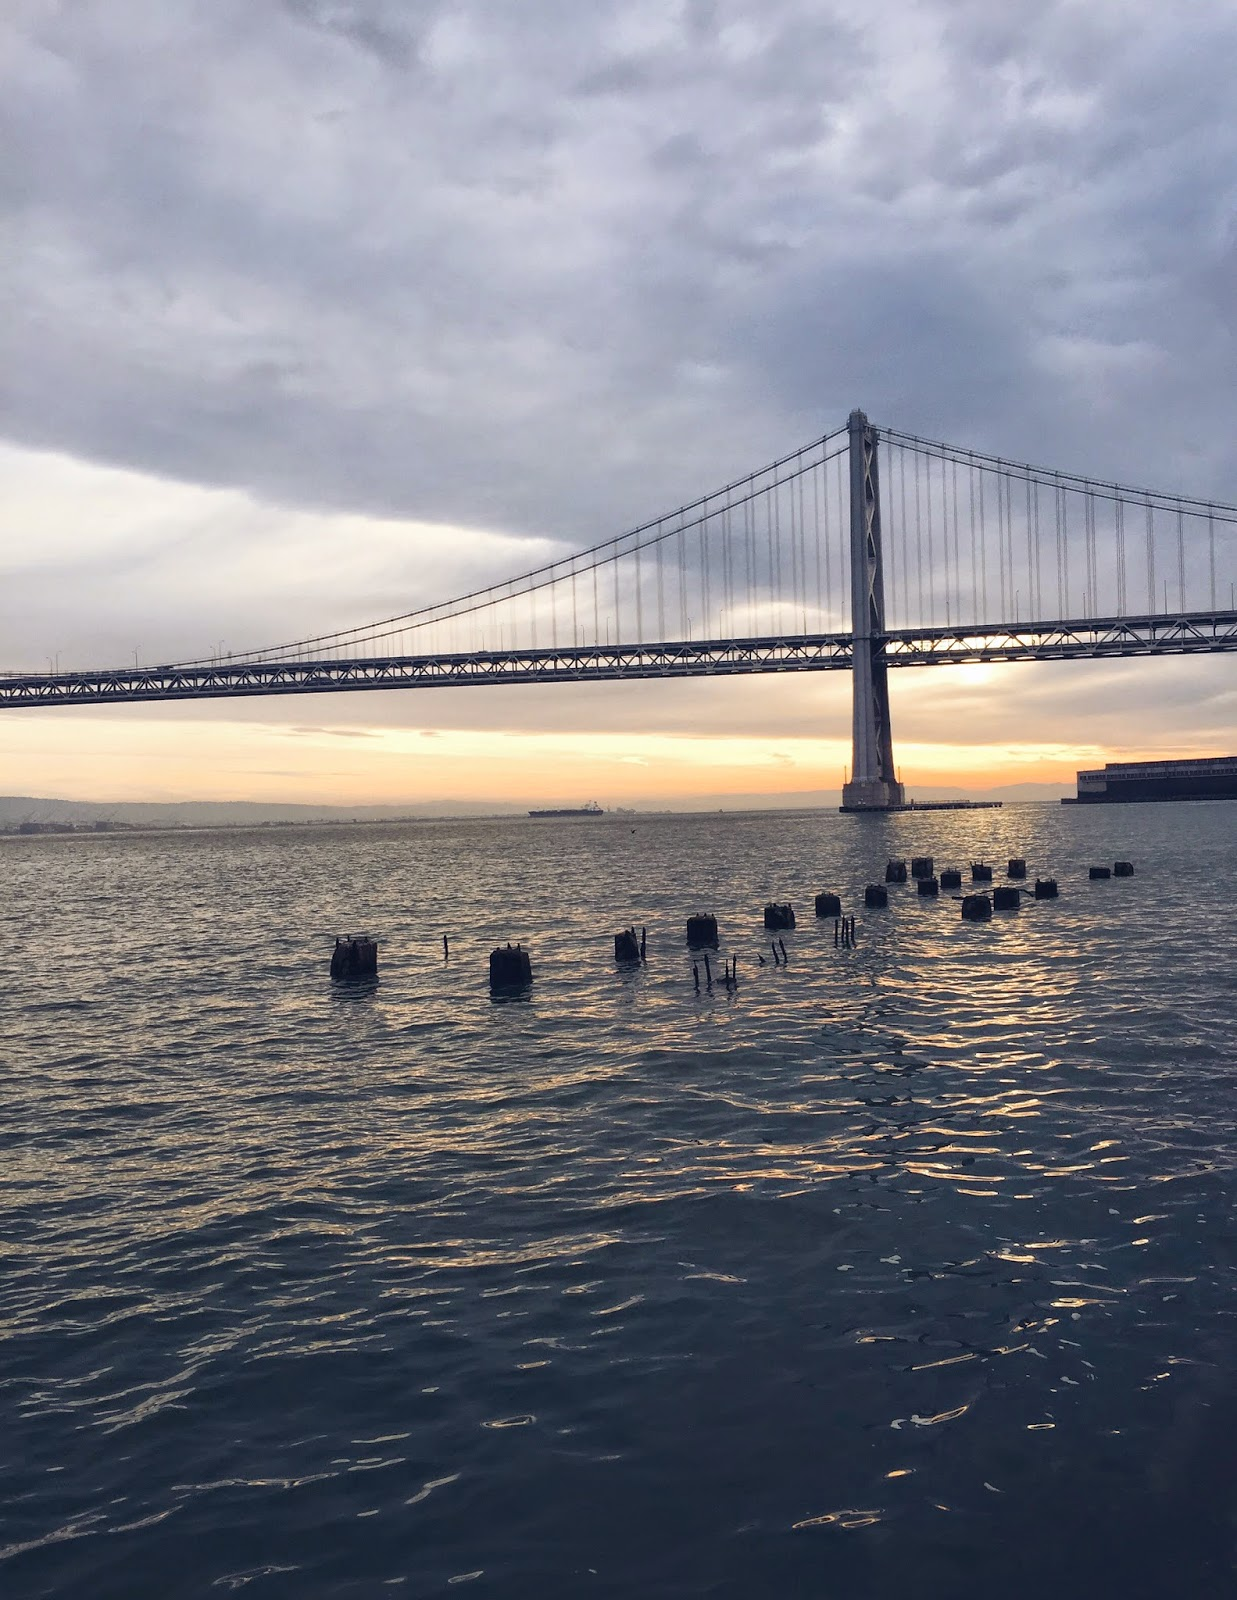 llovestoshare: #365daysofthebaybridge